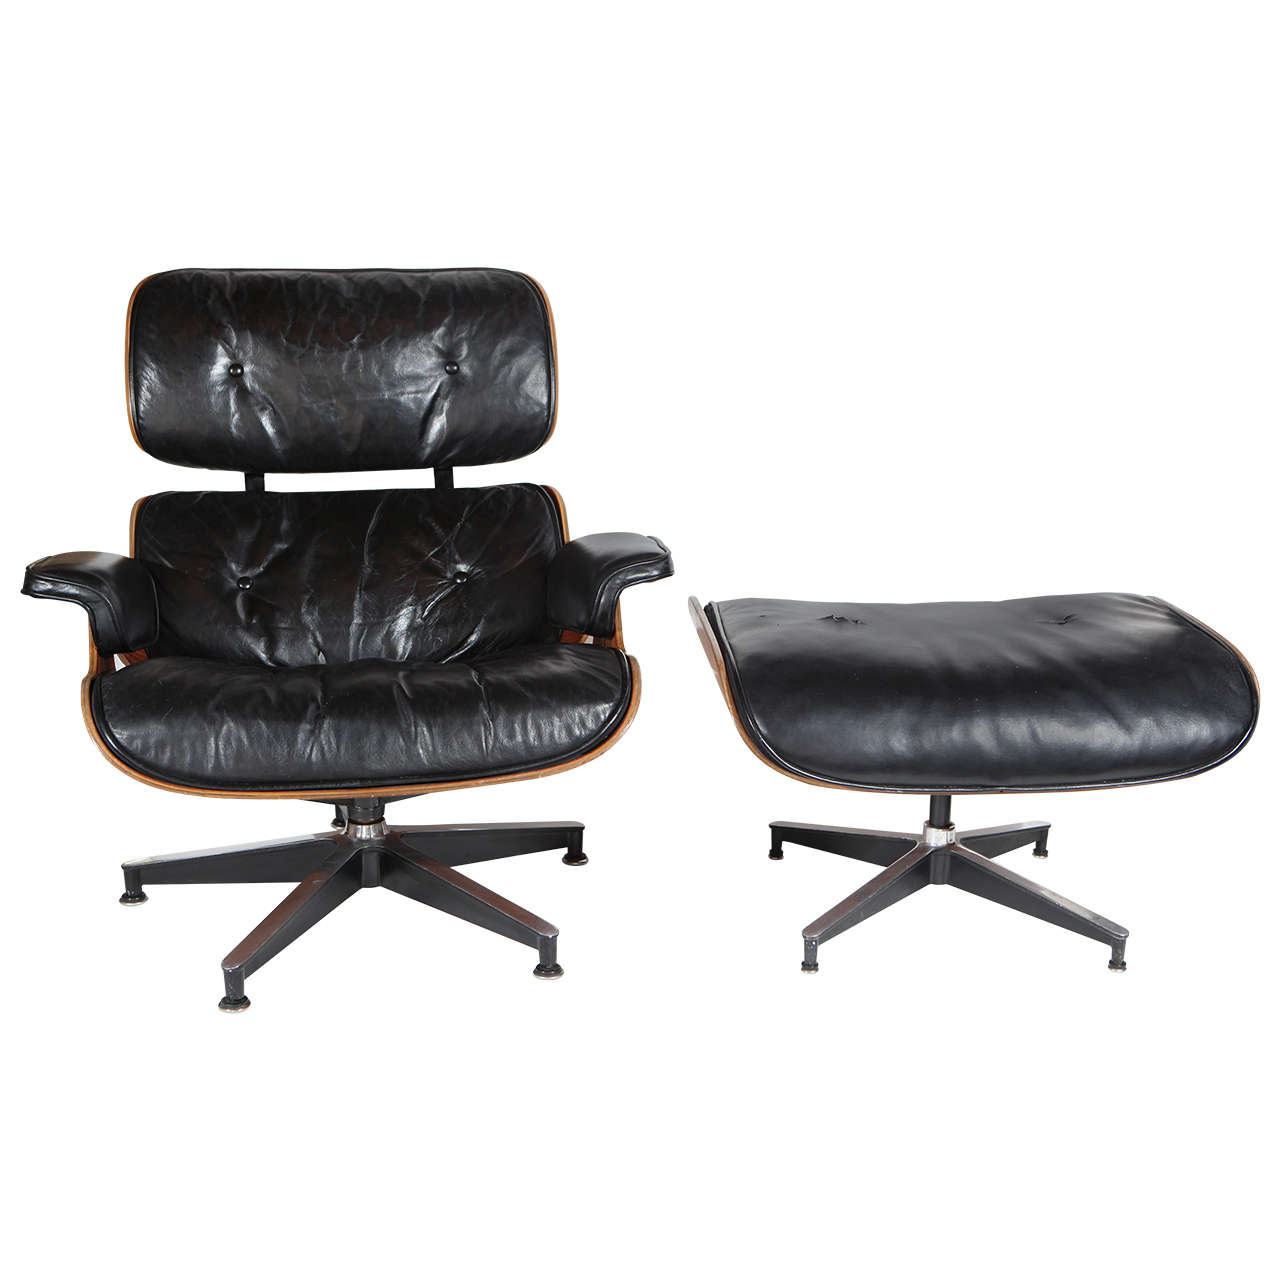 Rare early original eames lounge 670 671 armchair and ottoman at 1stdibs - Fauteuil eames original ...